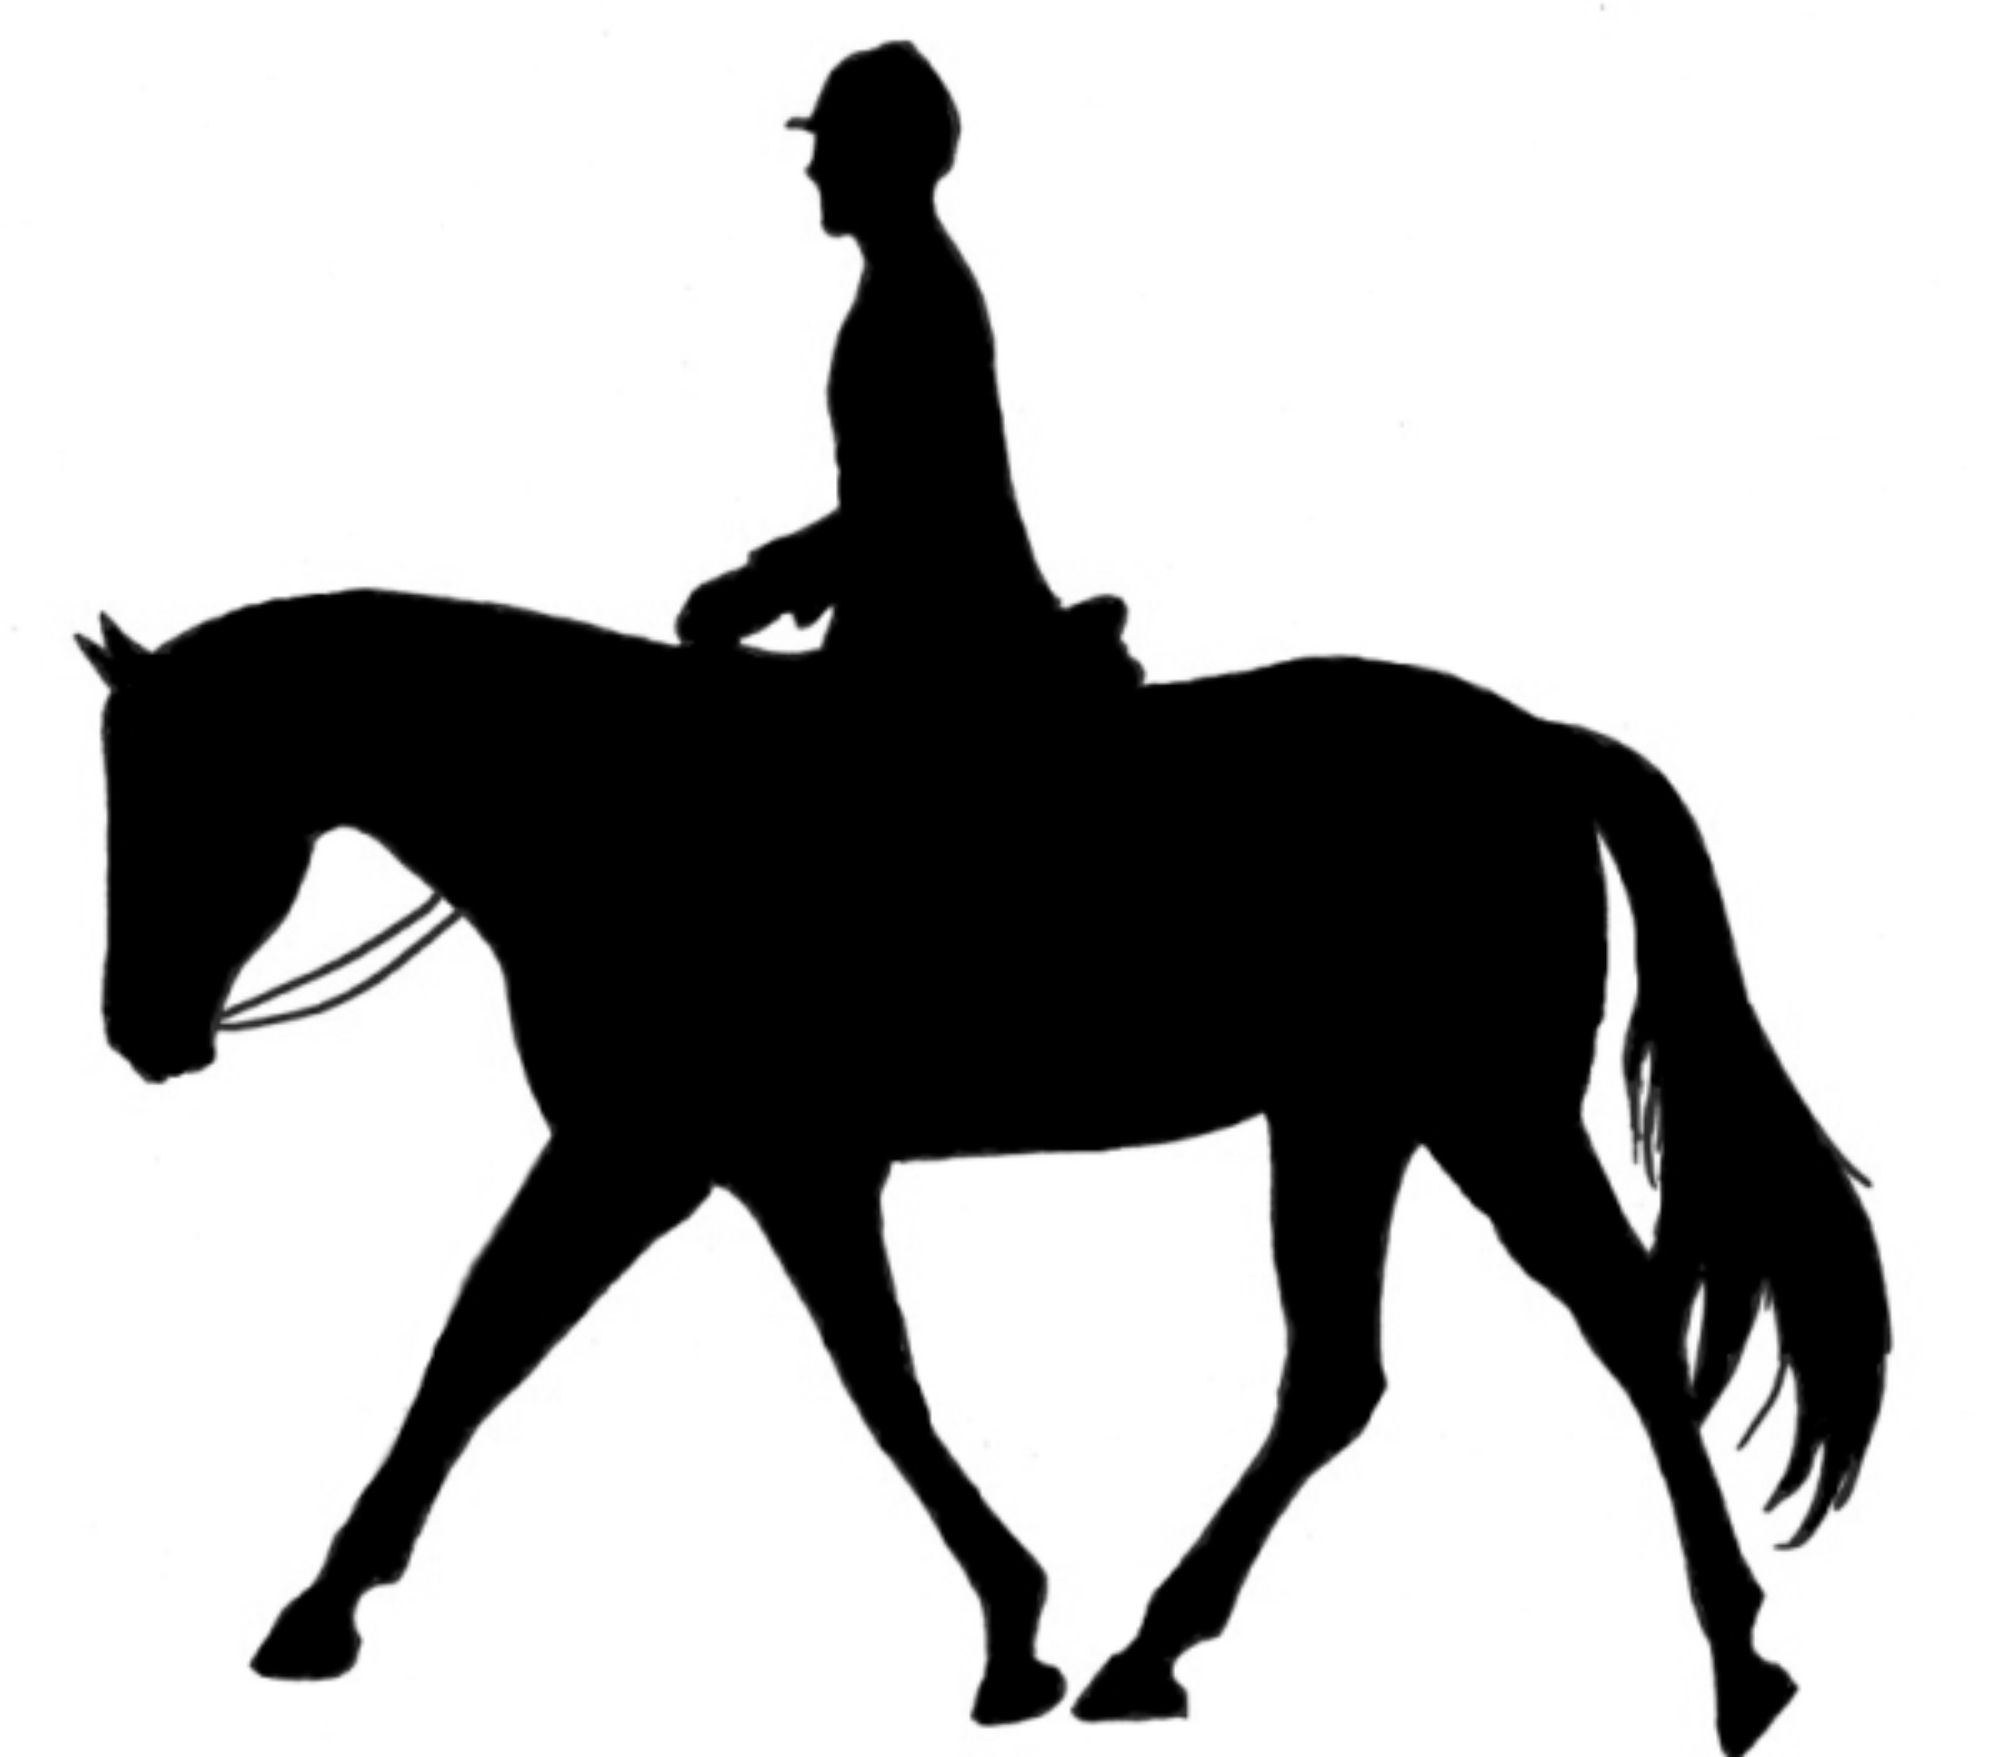 Riding clipart horseback riding. Horse silhouette images at